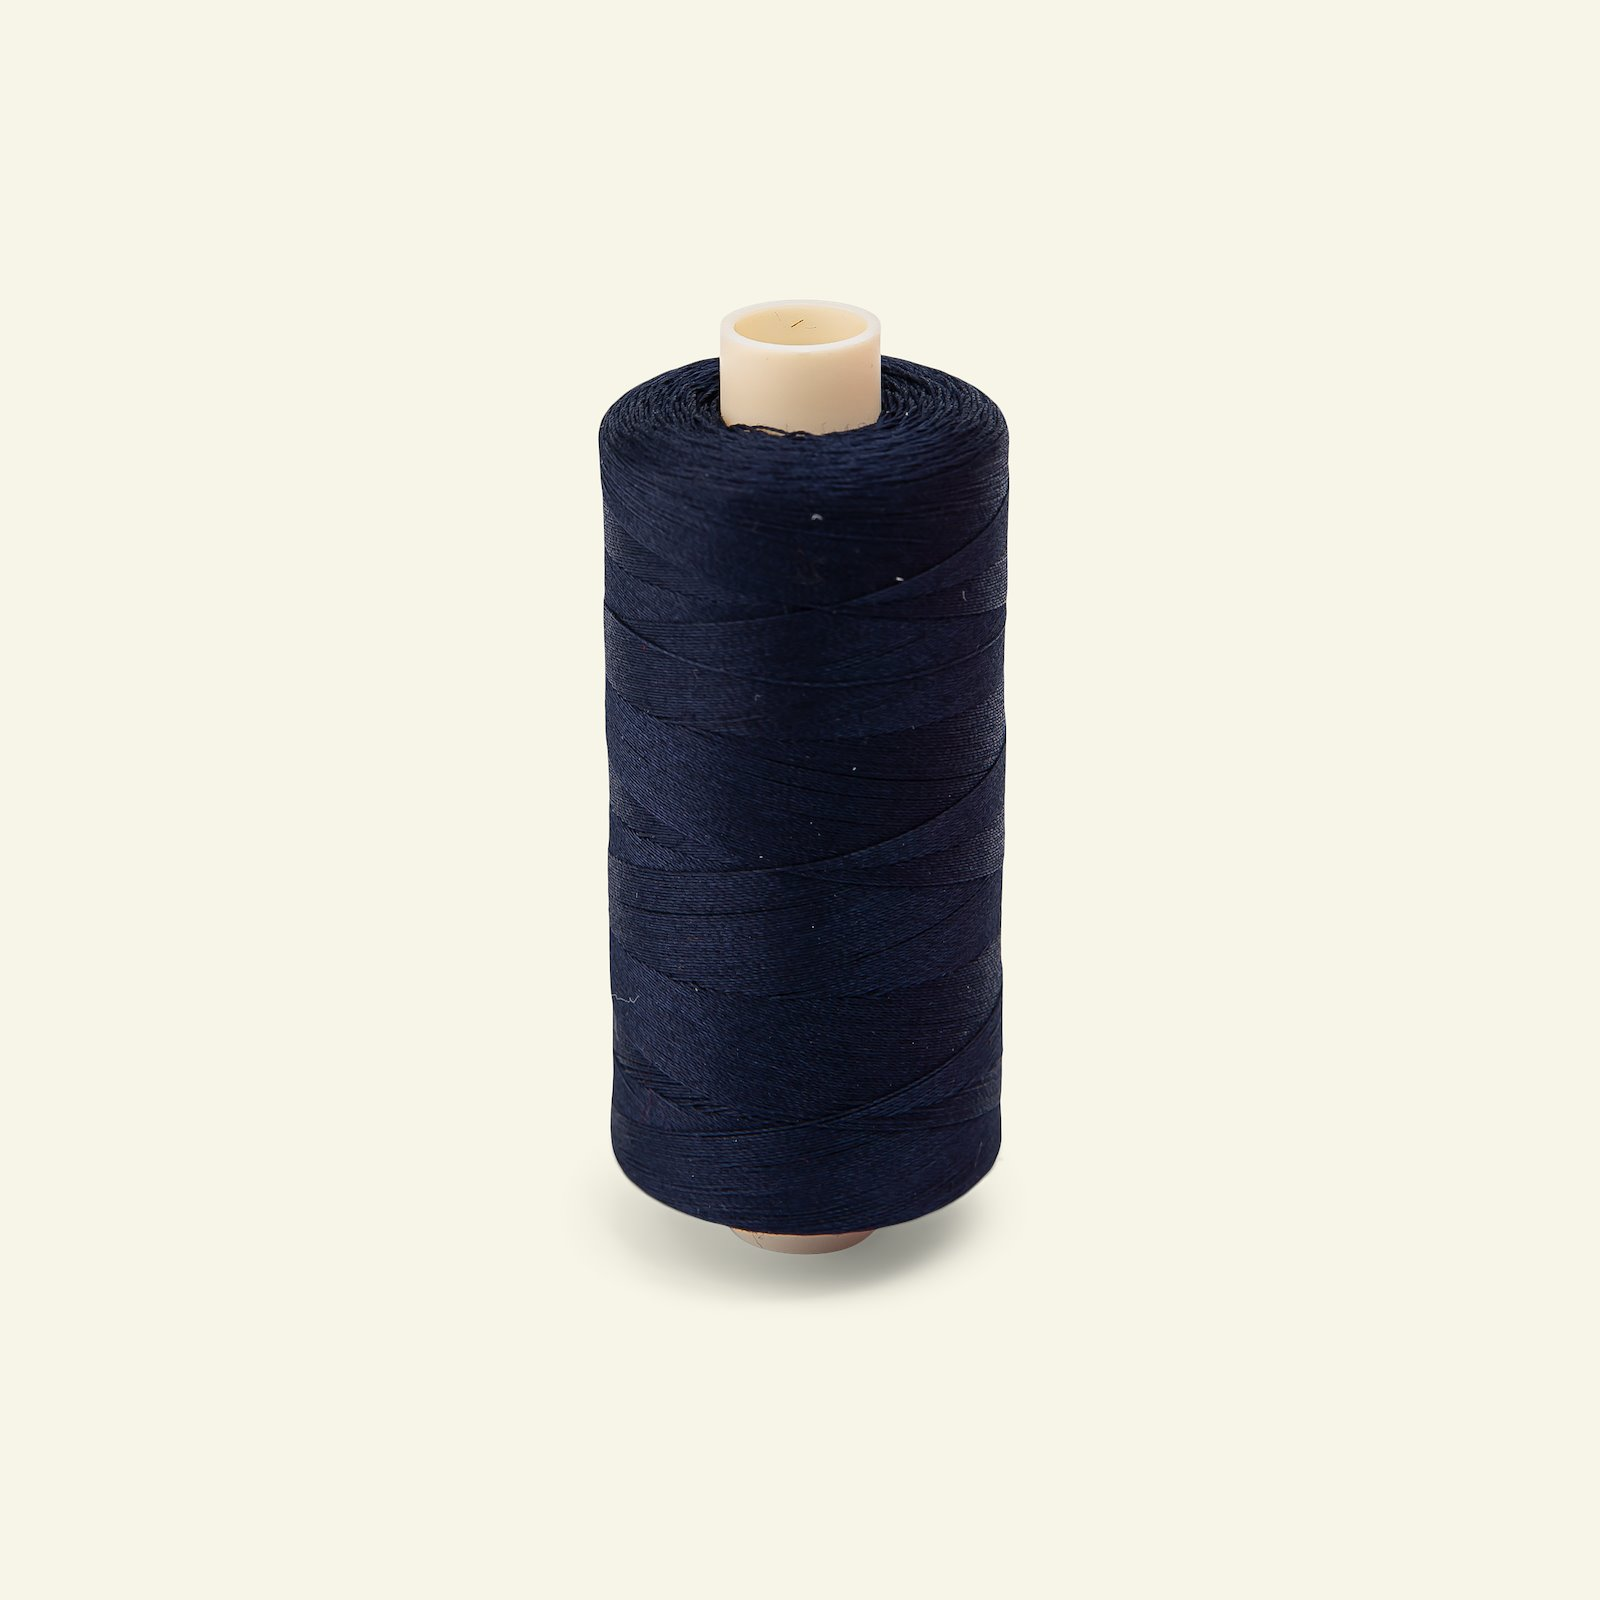 Sewing thread cotton navy 1000m 14023_pack